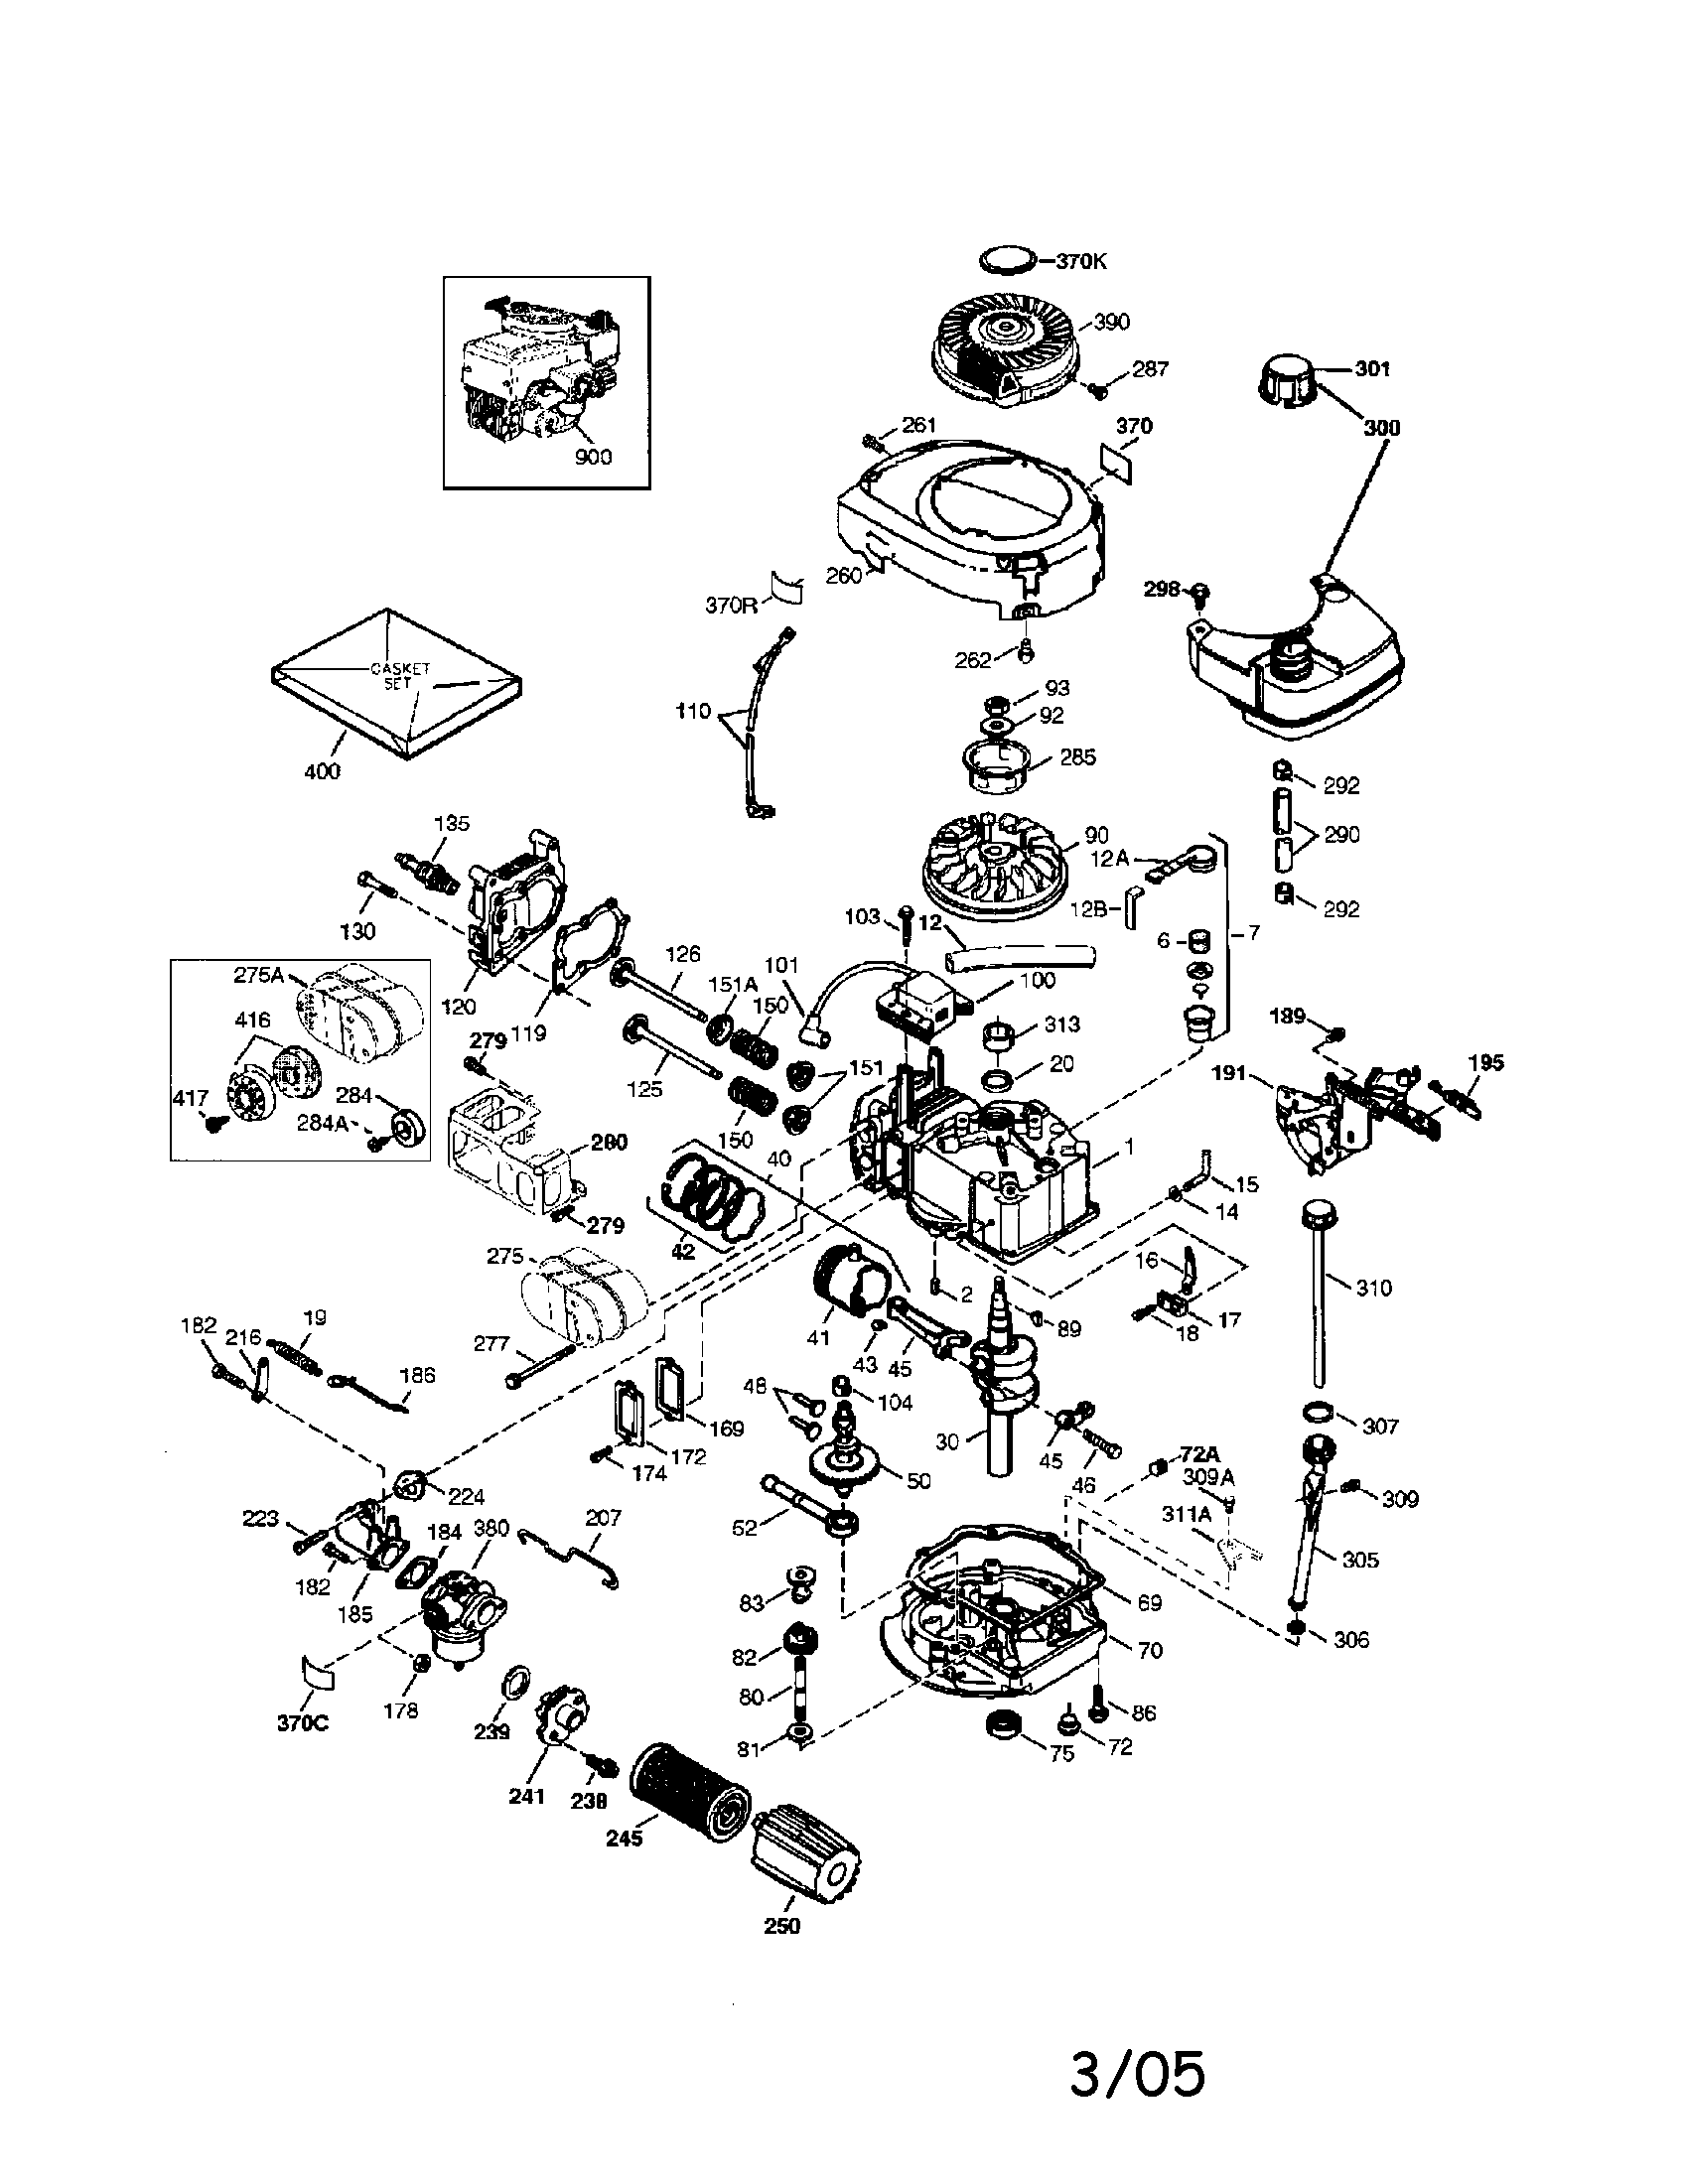 Radio Wiring Diagram For 2001 Isuzu Trooper. Isuzu. Auto